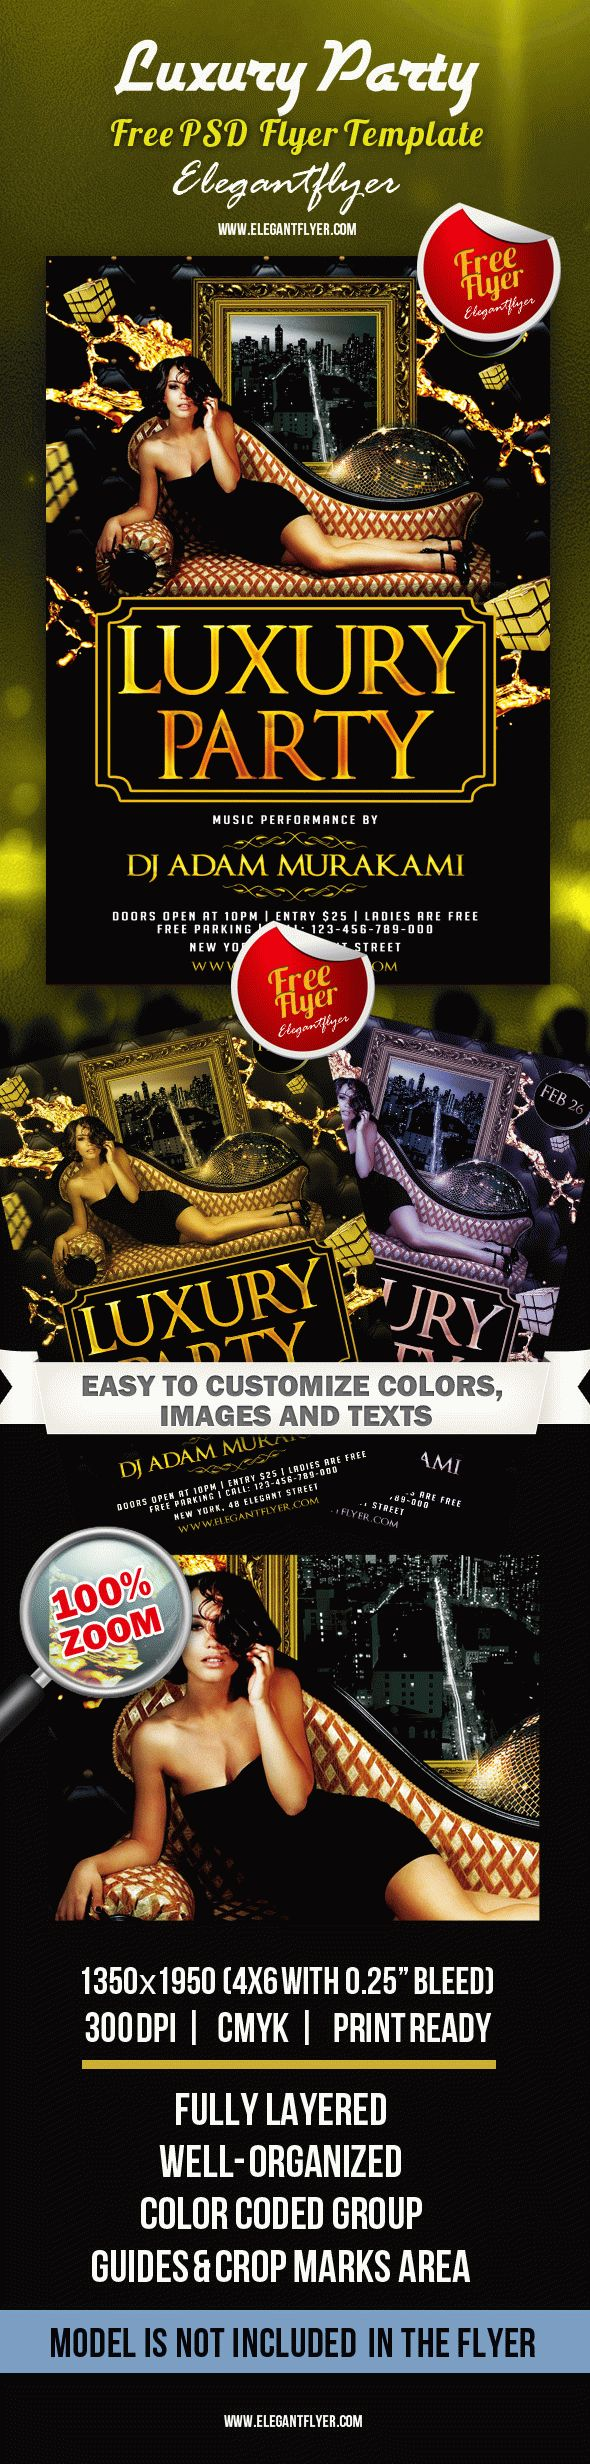 Free Flyer Luxury Party Club